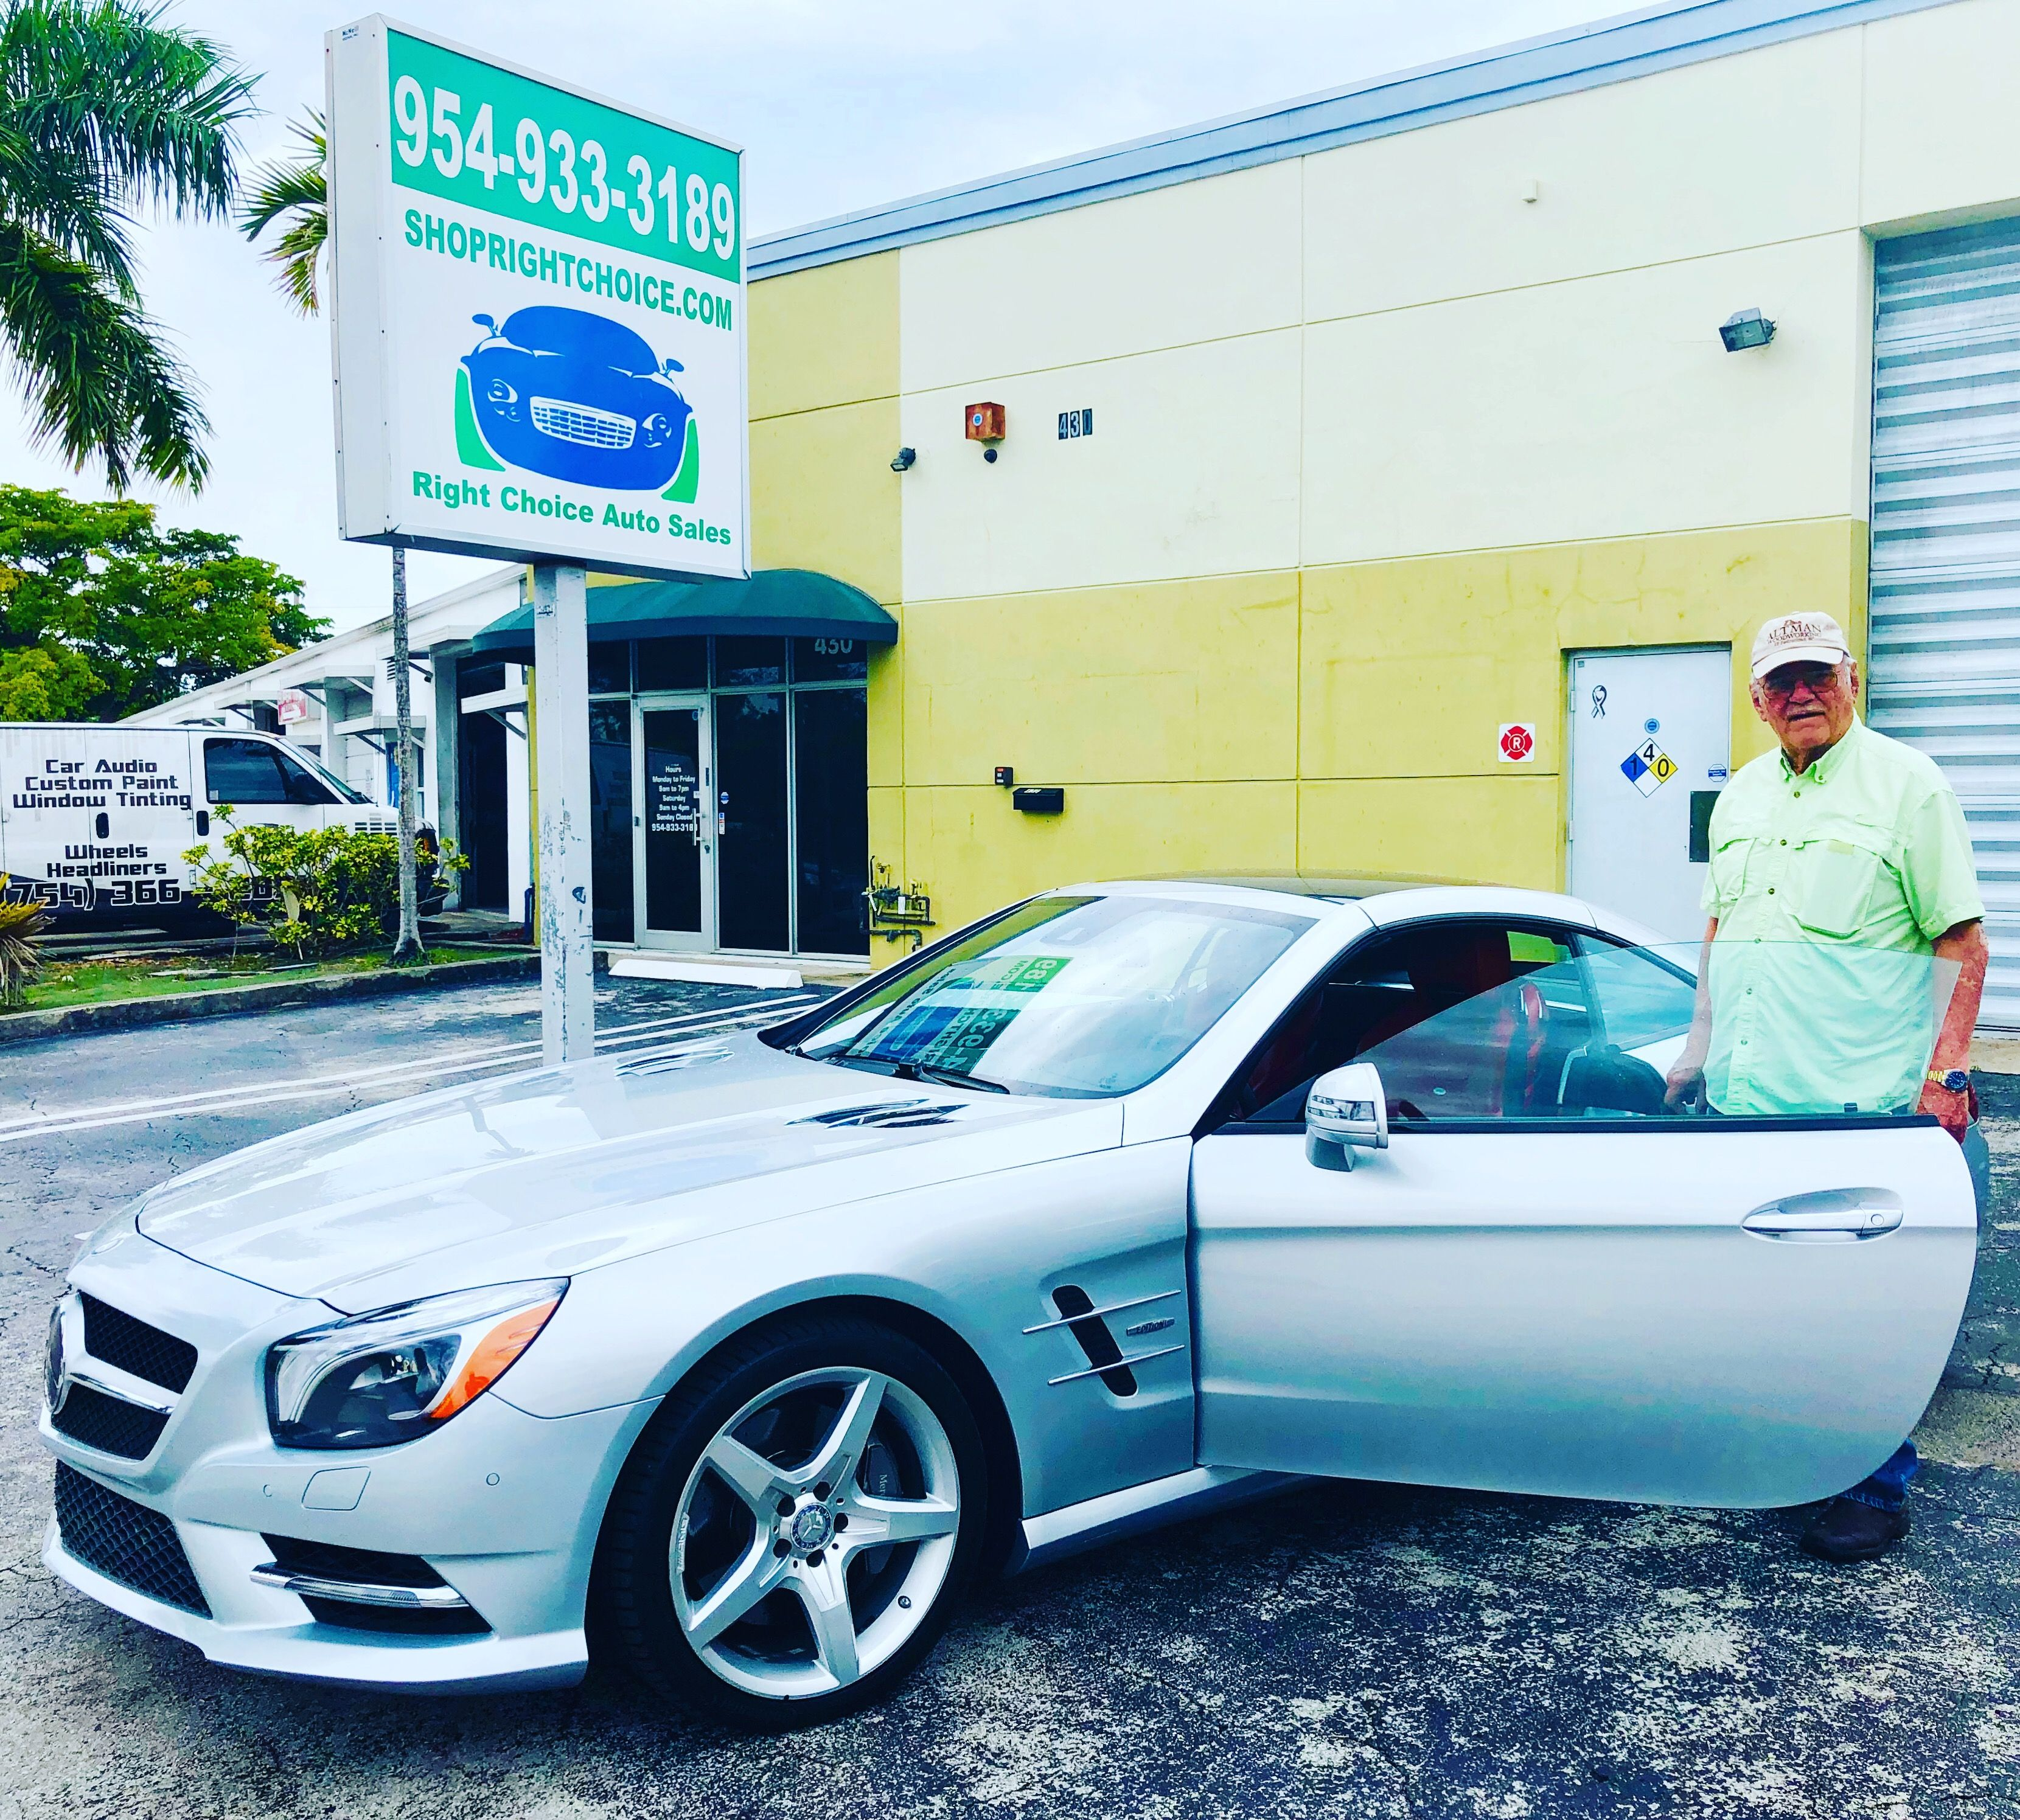 Another Happy Customer At Right Choice Auto Sales In Pompano Beach Fl Bill Flew In From Nc And Drove Home In This Spec Cars For Sale Pompano Beach Used Cars